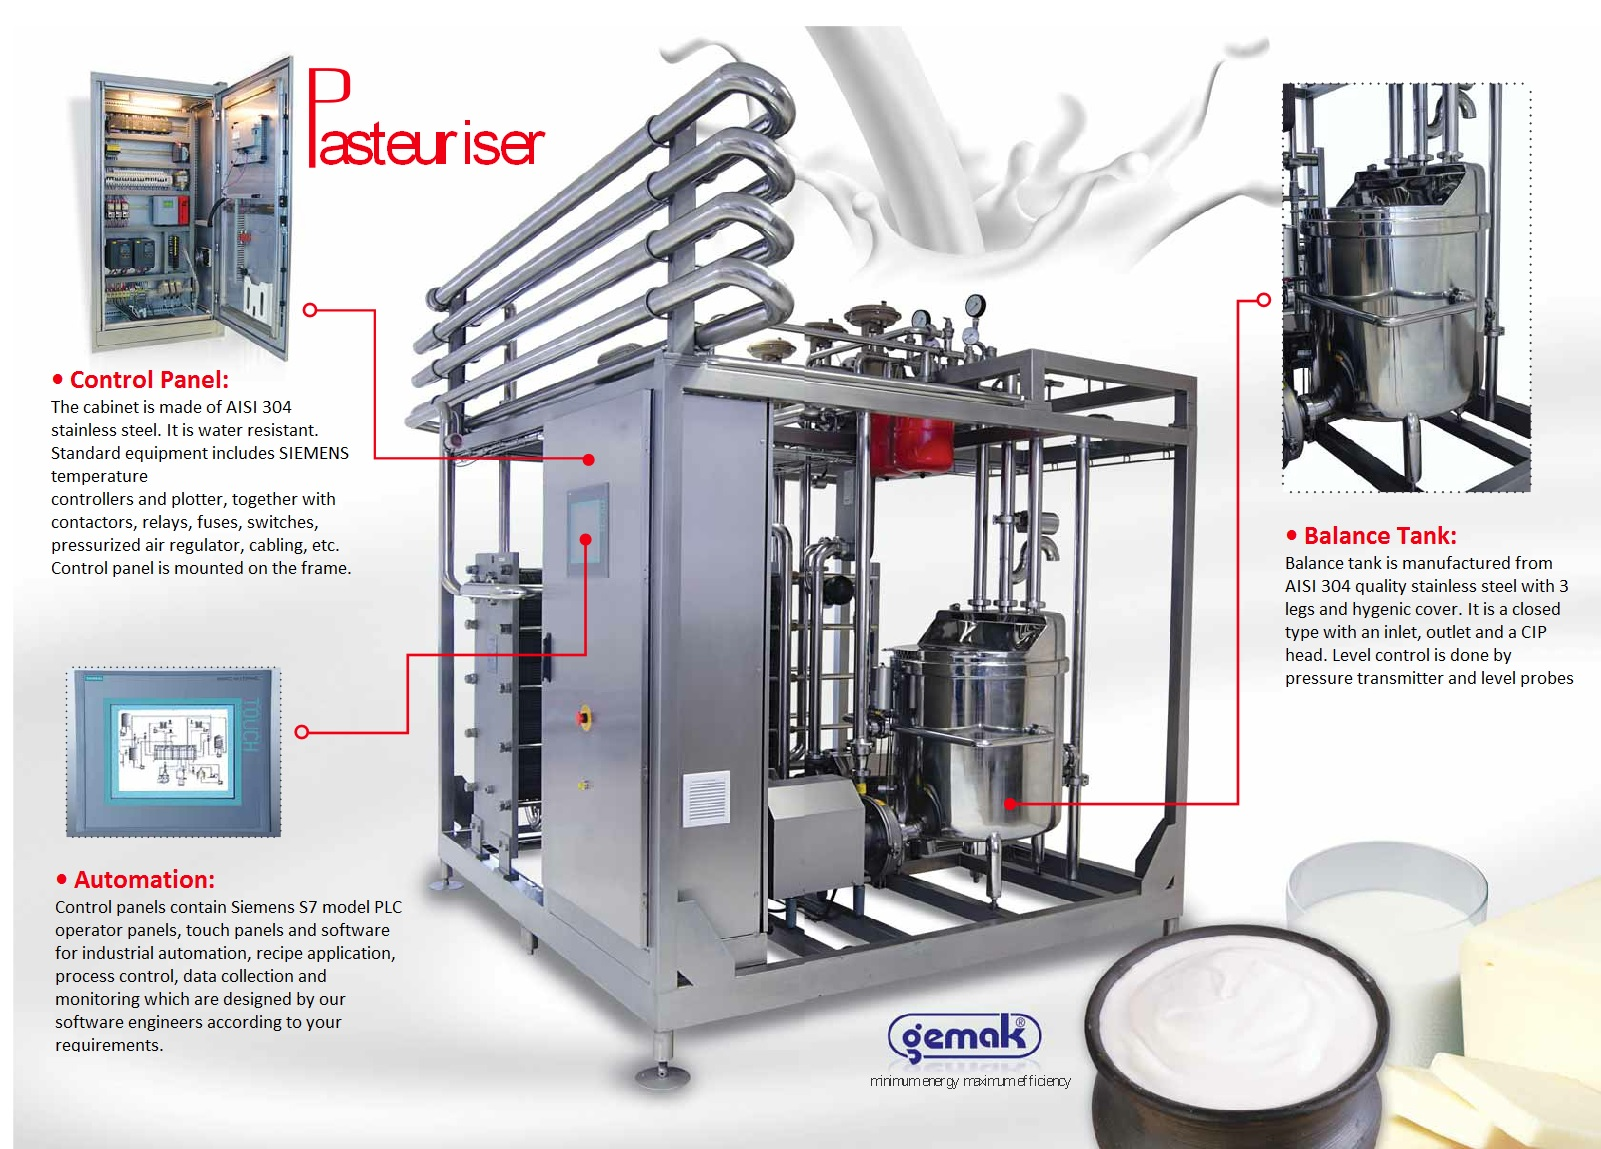 products_image_8883258-pasteuriser-page-2.jpg